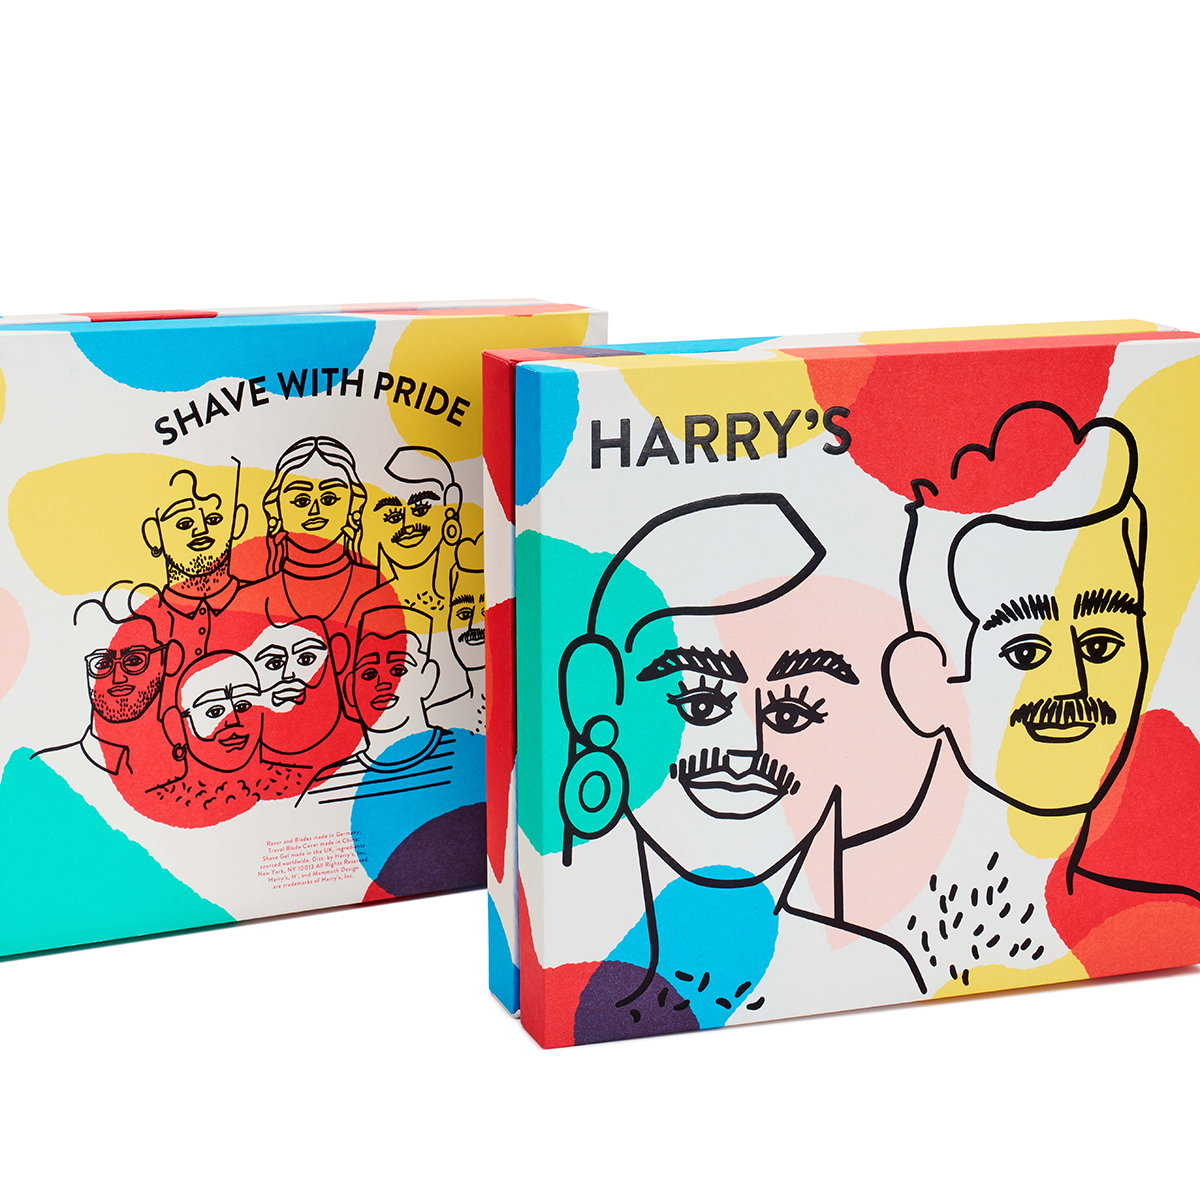 Harry's Launches Shave With Pride Set